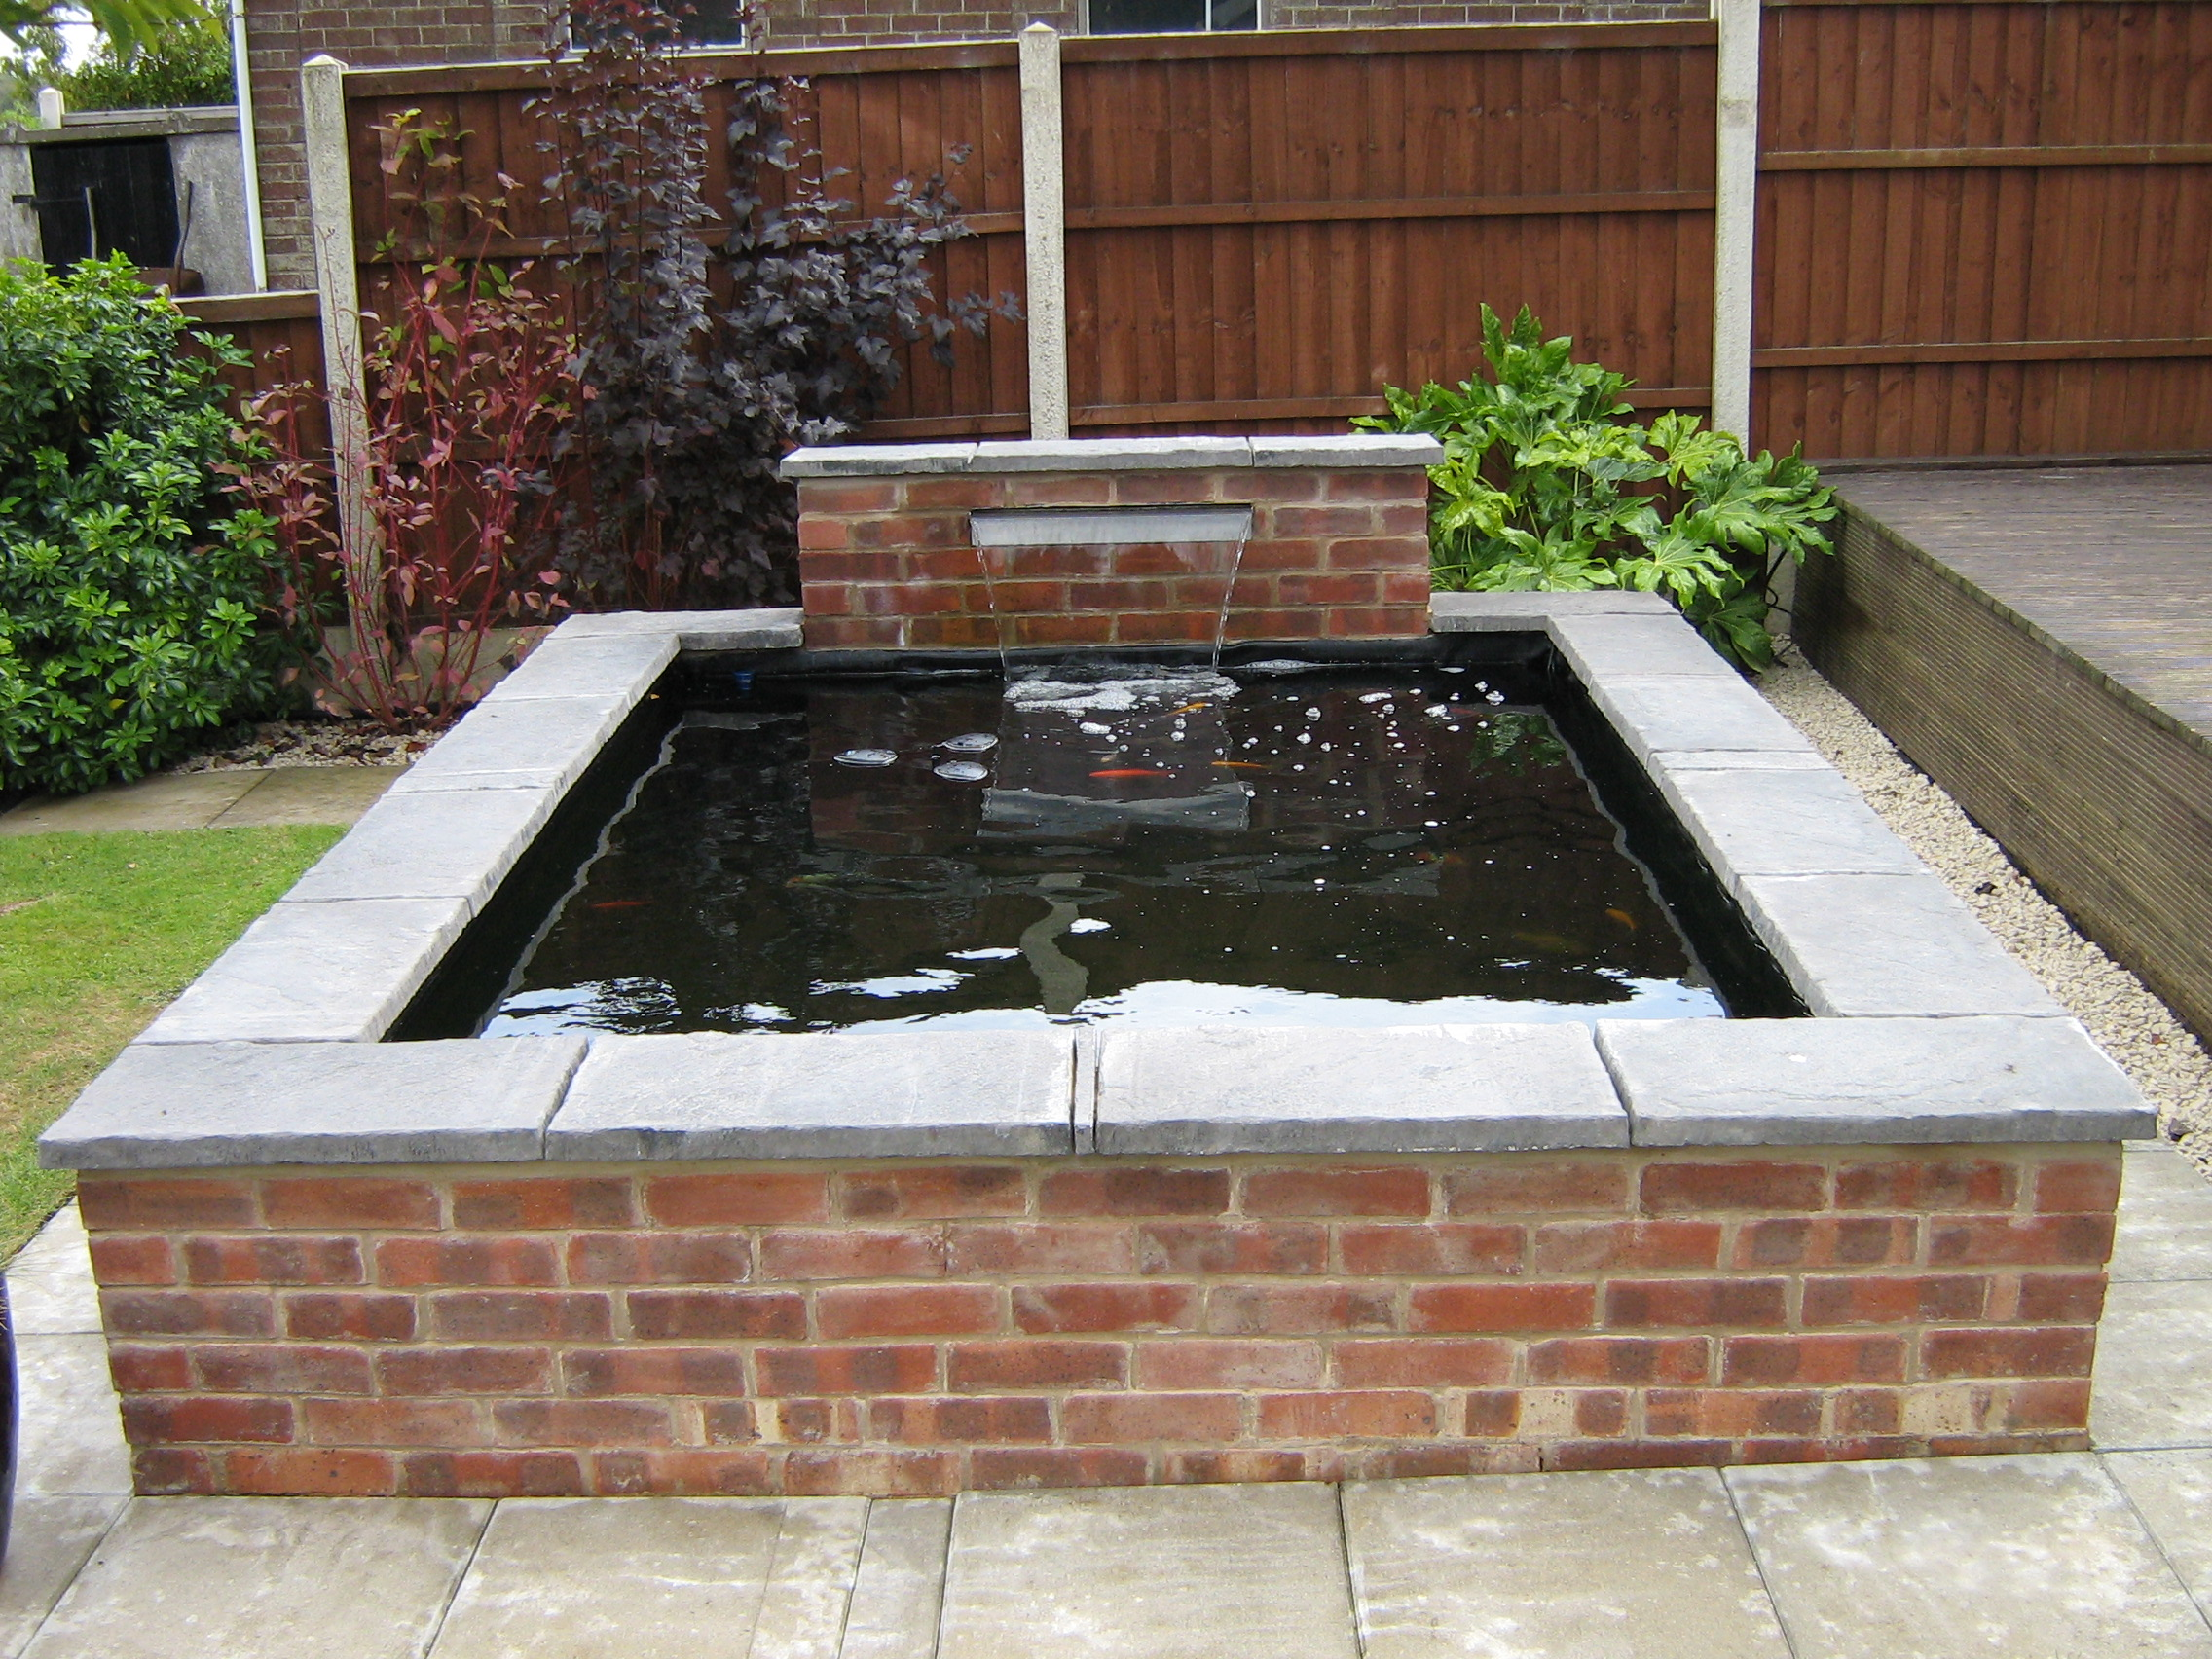 Case studies aquatic care all aspects of aquarium and for Concrete fish pond construction and design